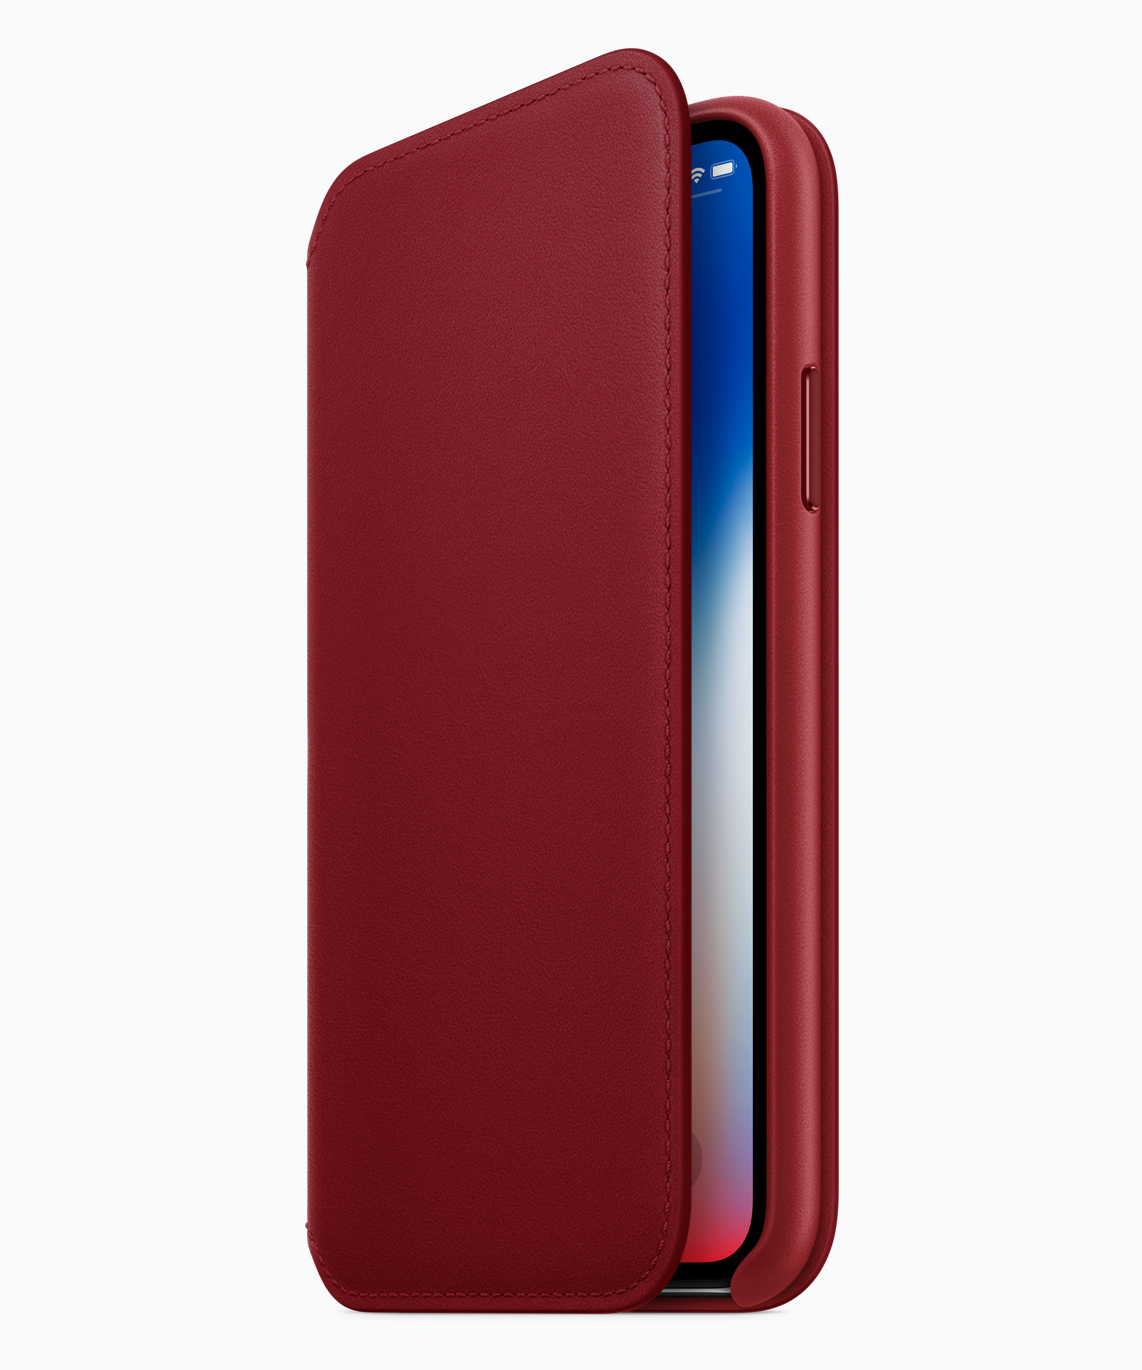 Iphone8 Iphone8plus Product Red Folio Case 041018